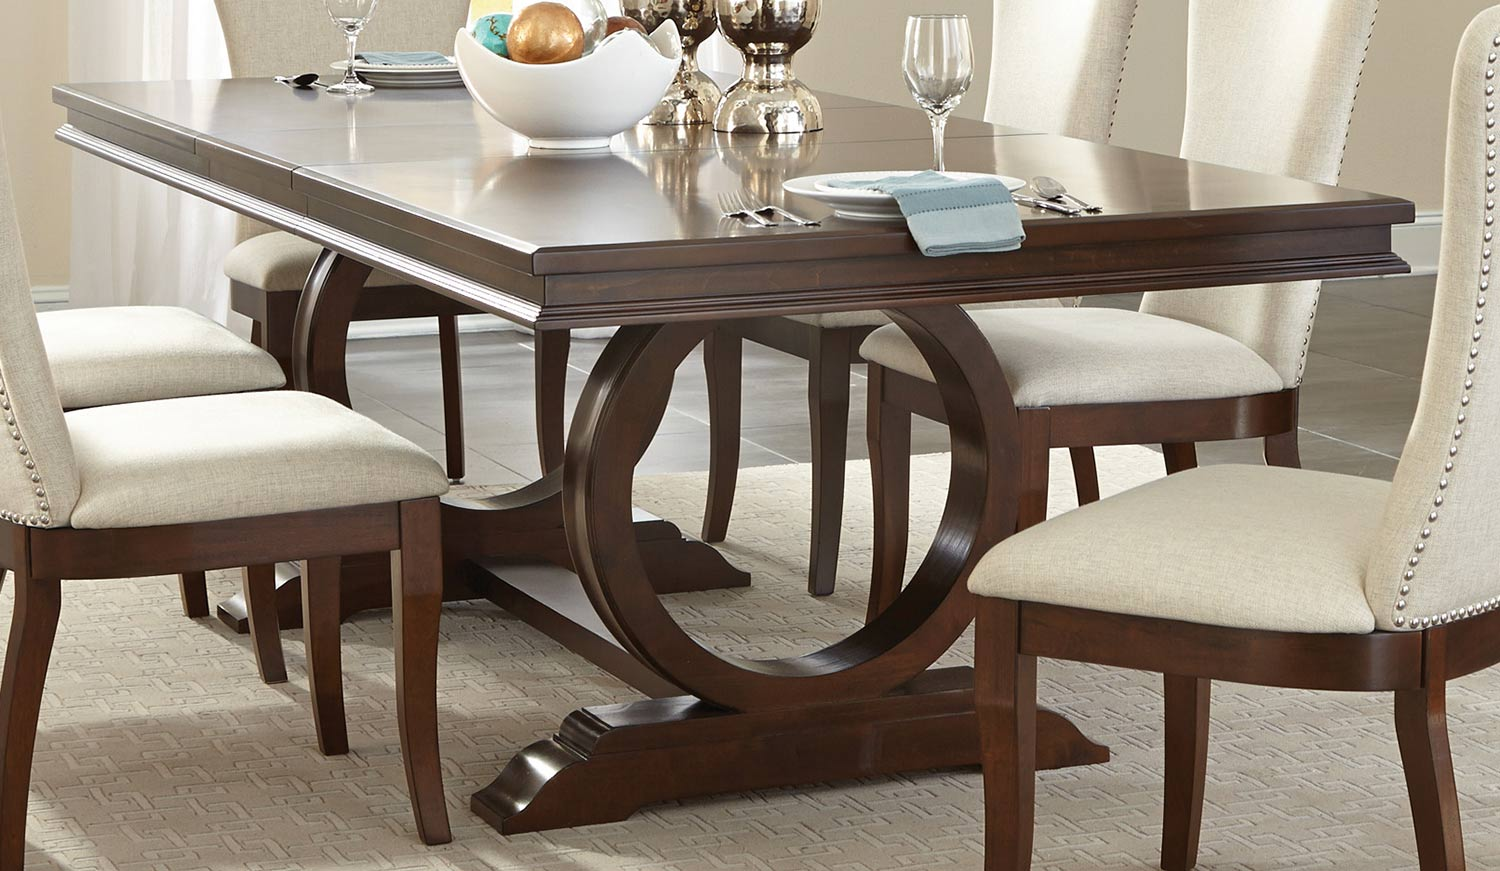 Homelegance Oratorio Dining Table - Cherry